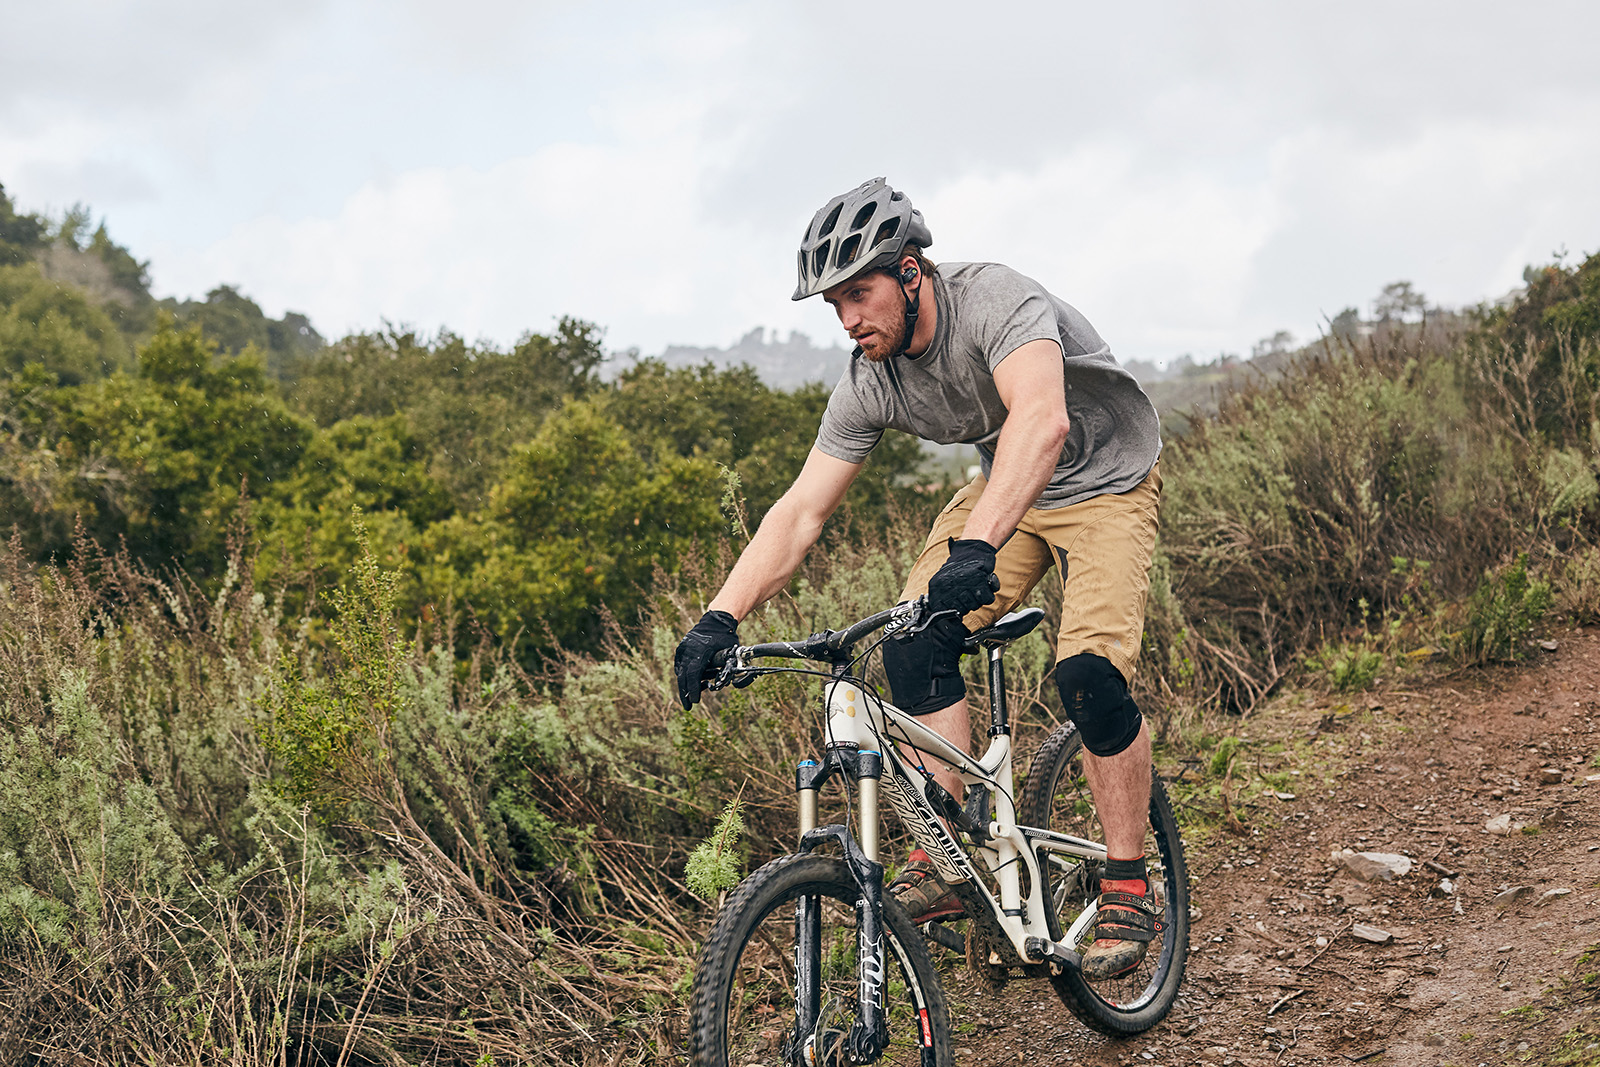 mountain-biking-surge-IMG_8867x1600.jpg